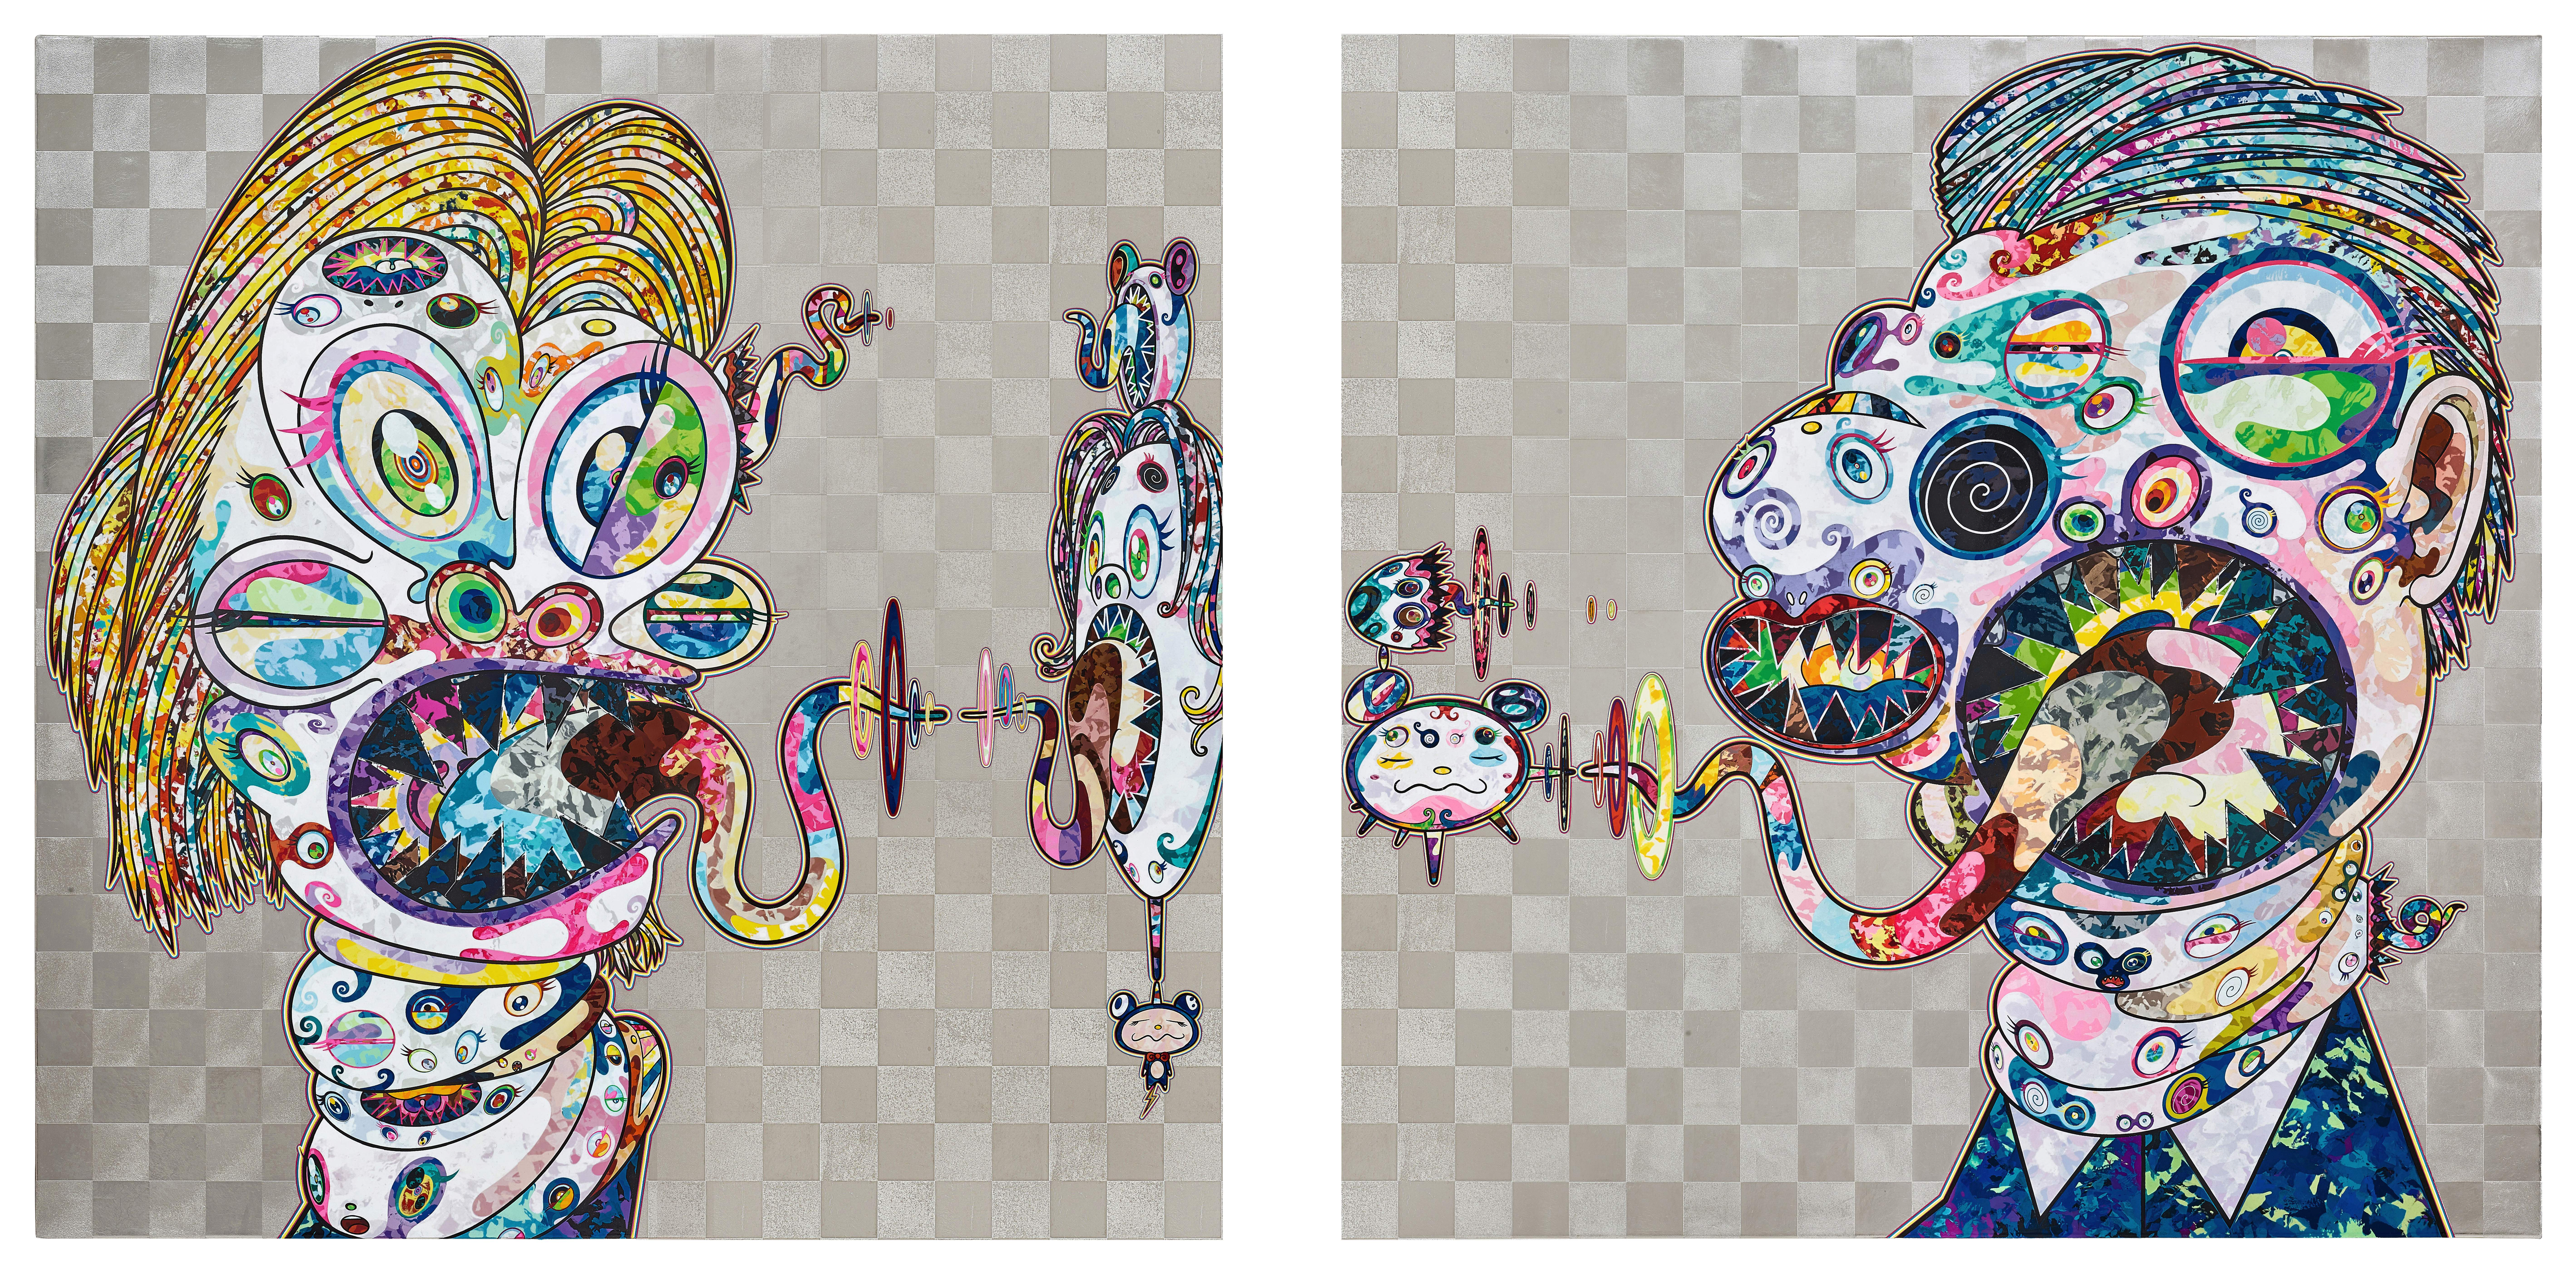 View full screen - View 1 of Lot 1129. Takashi Murakami 村上隆 | Homage to Francis Bacon (Study for Head of Isabel Rawsthorne and George Dyer) 培根致敬:伊莎貝爾‧羅斯與喬治‧戴爾頭像習作.